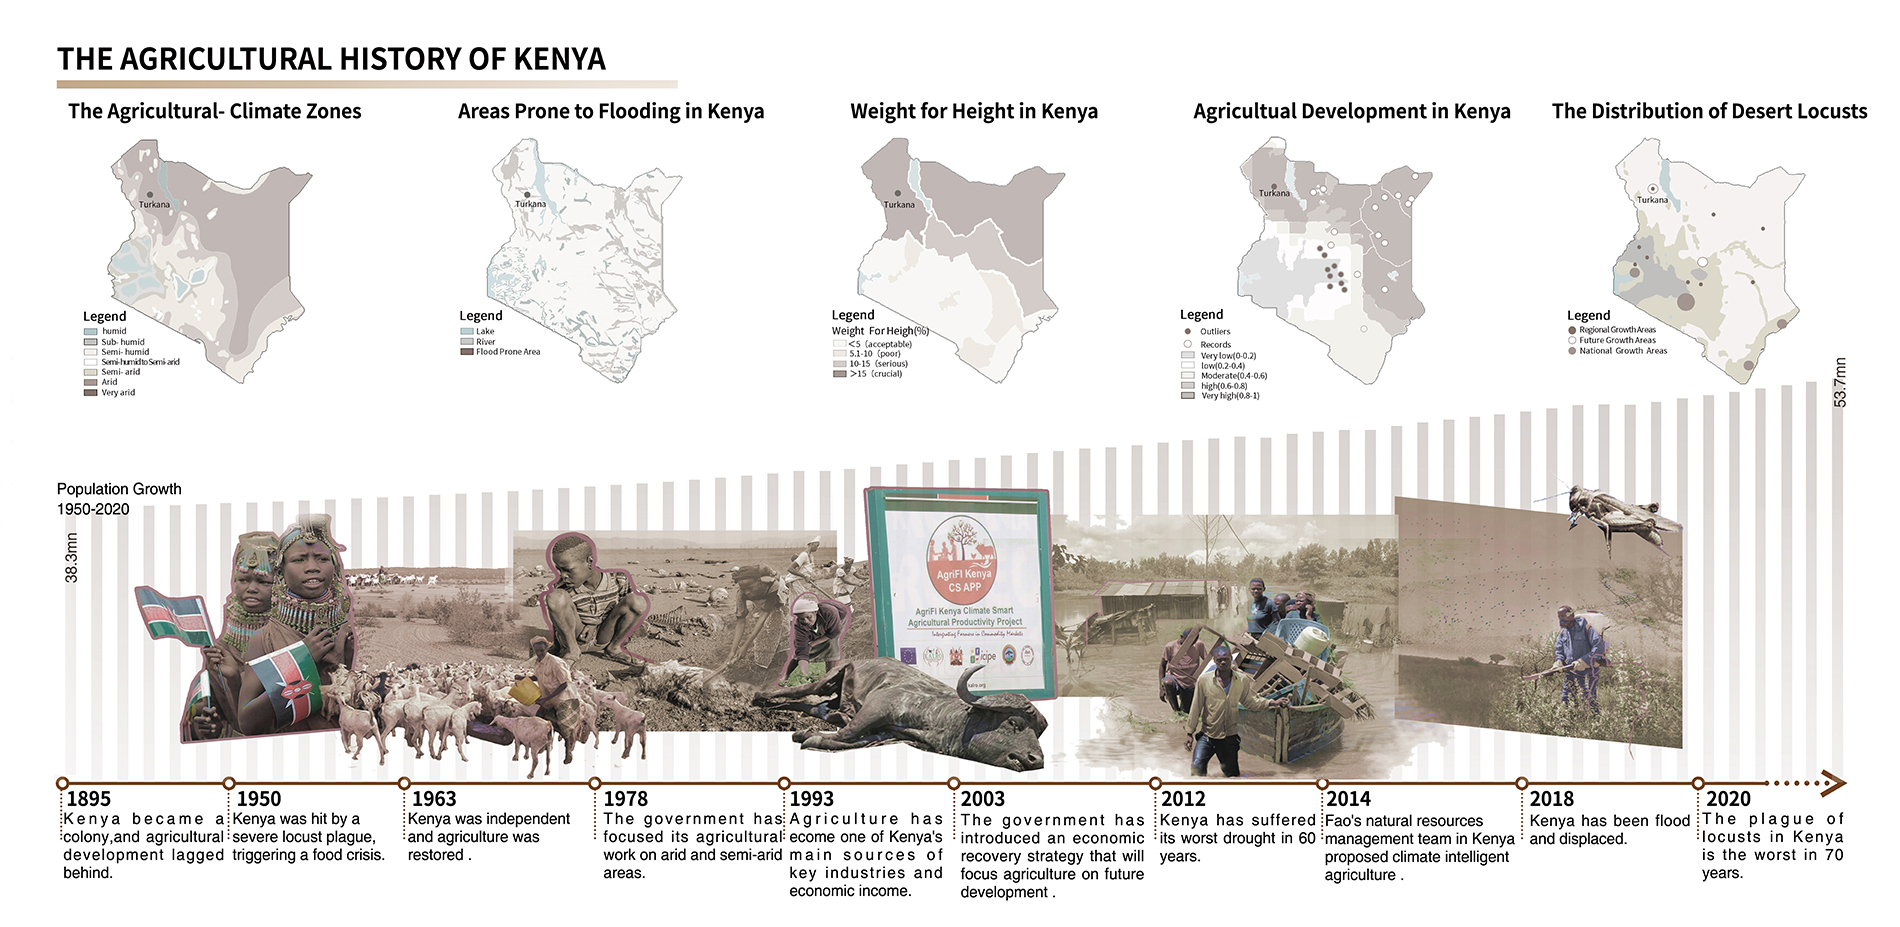 The agricultural history of Kenya